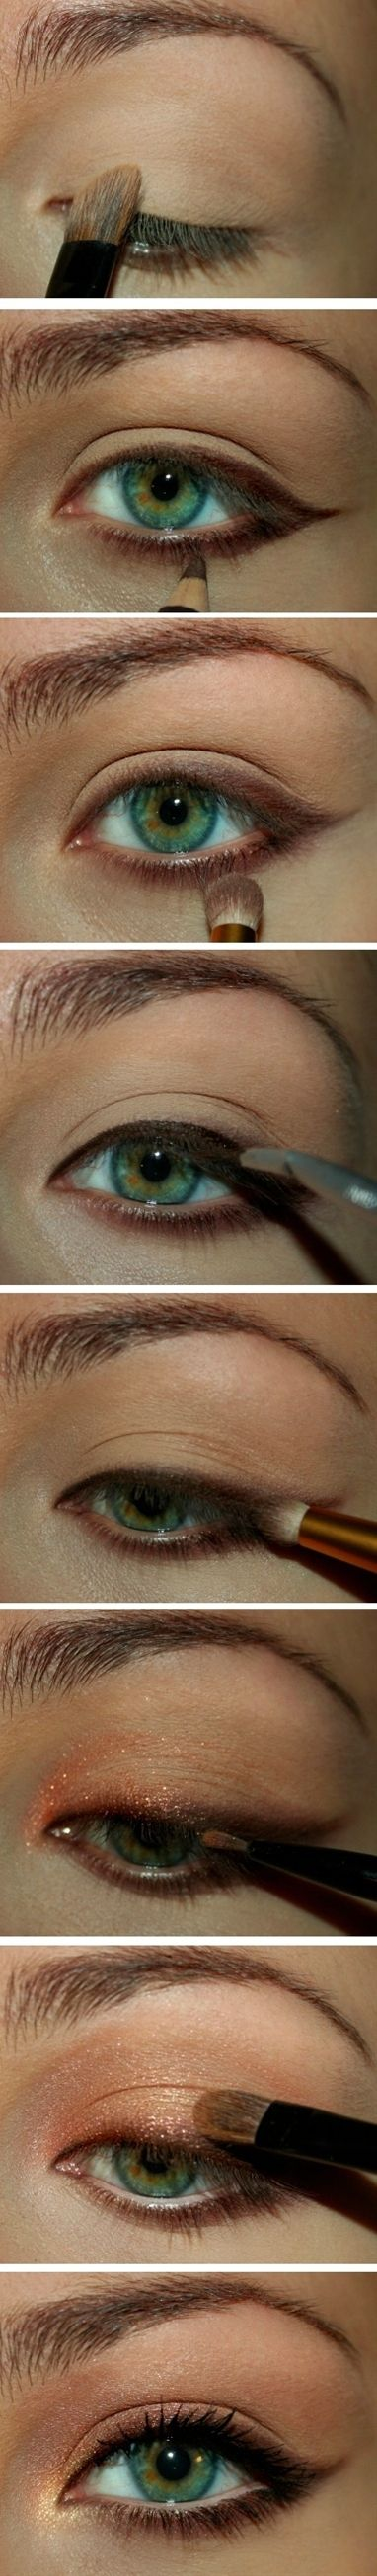 Peach smokey eye ~ Very pretty might have to try, but first need somewhere to go!!!